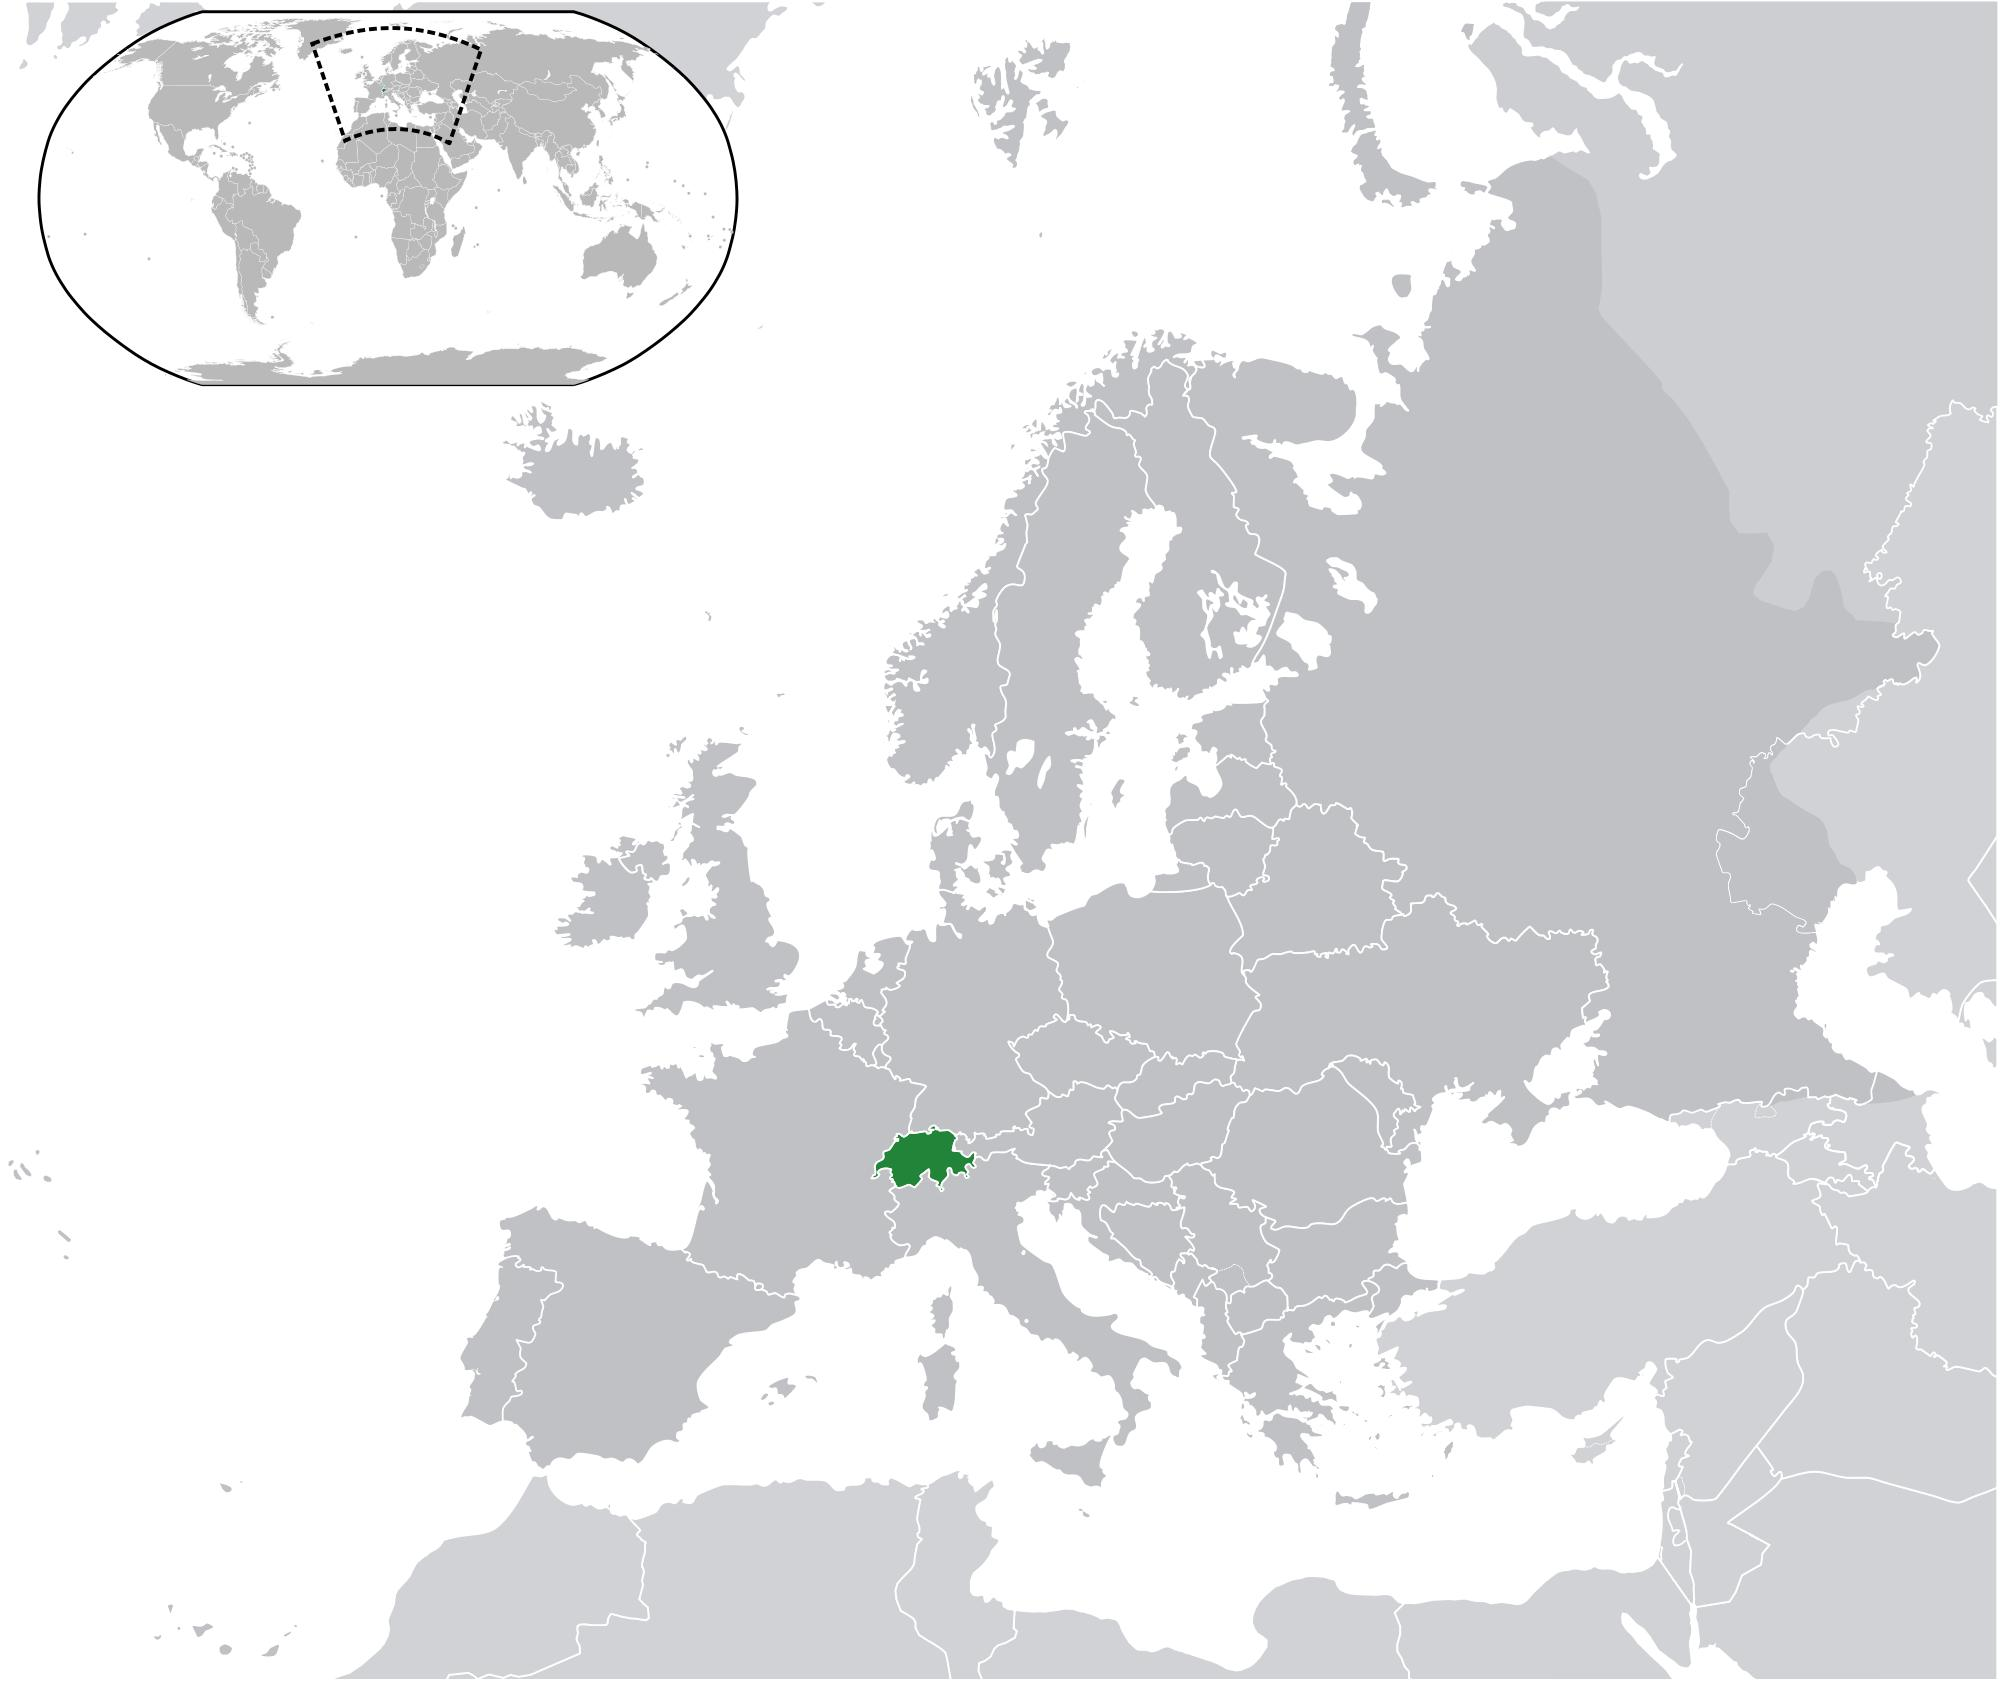 Switzerland On World Map Switzerland Map On World Western Europe